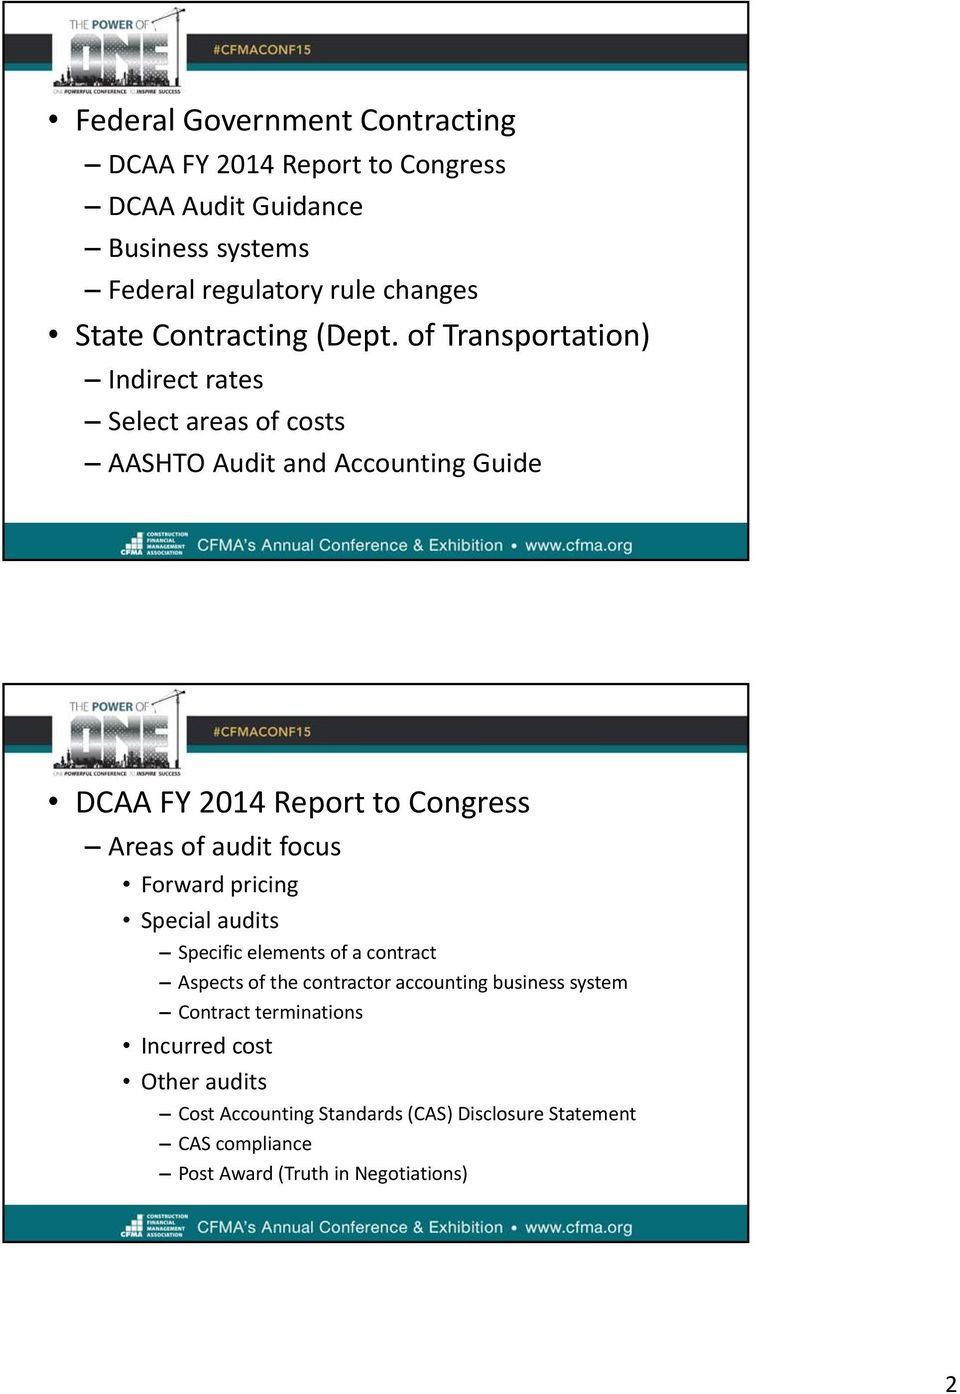 of Transportation) Indirect rates Select areas of costs AASHTO Audit and Accounting Guide DCAA FY 2014 Report to Congress Areas of audit focus